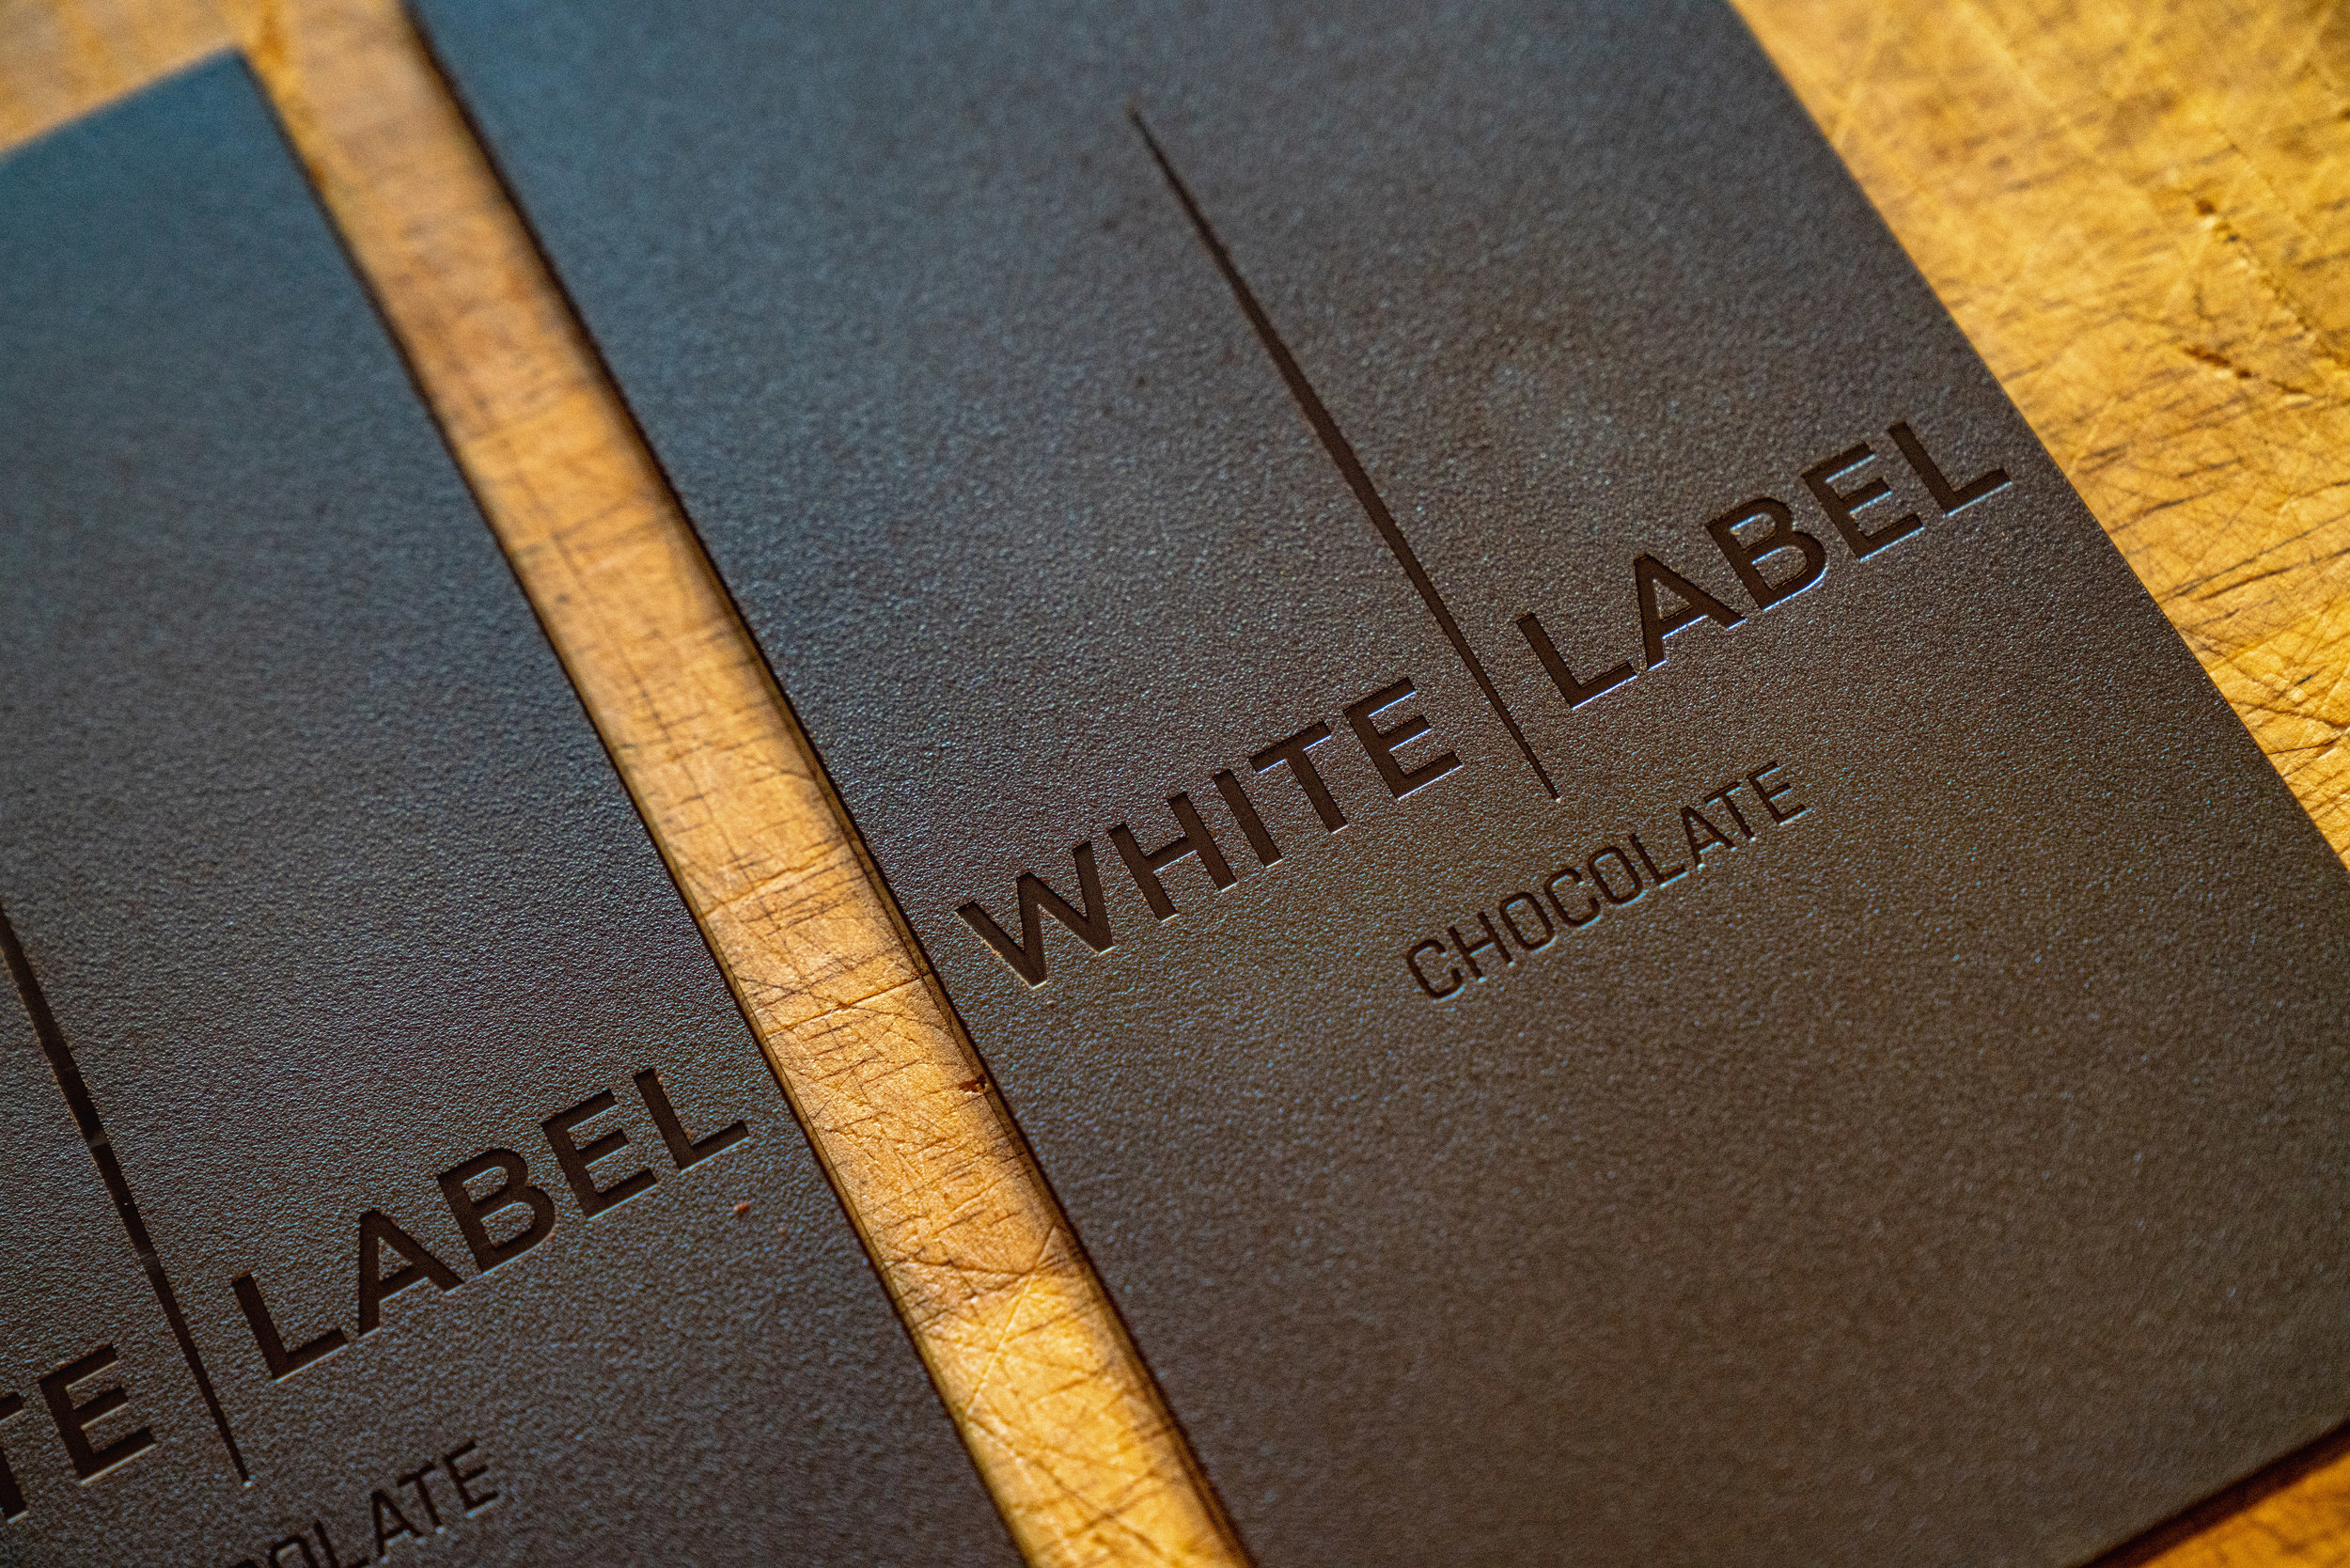 White Lable Chocolate by Dalton Johnson Media